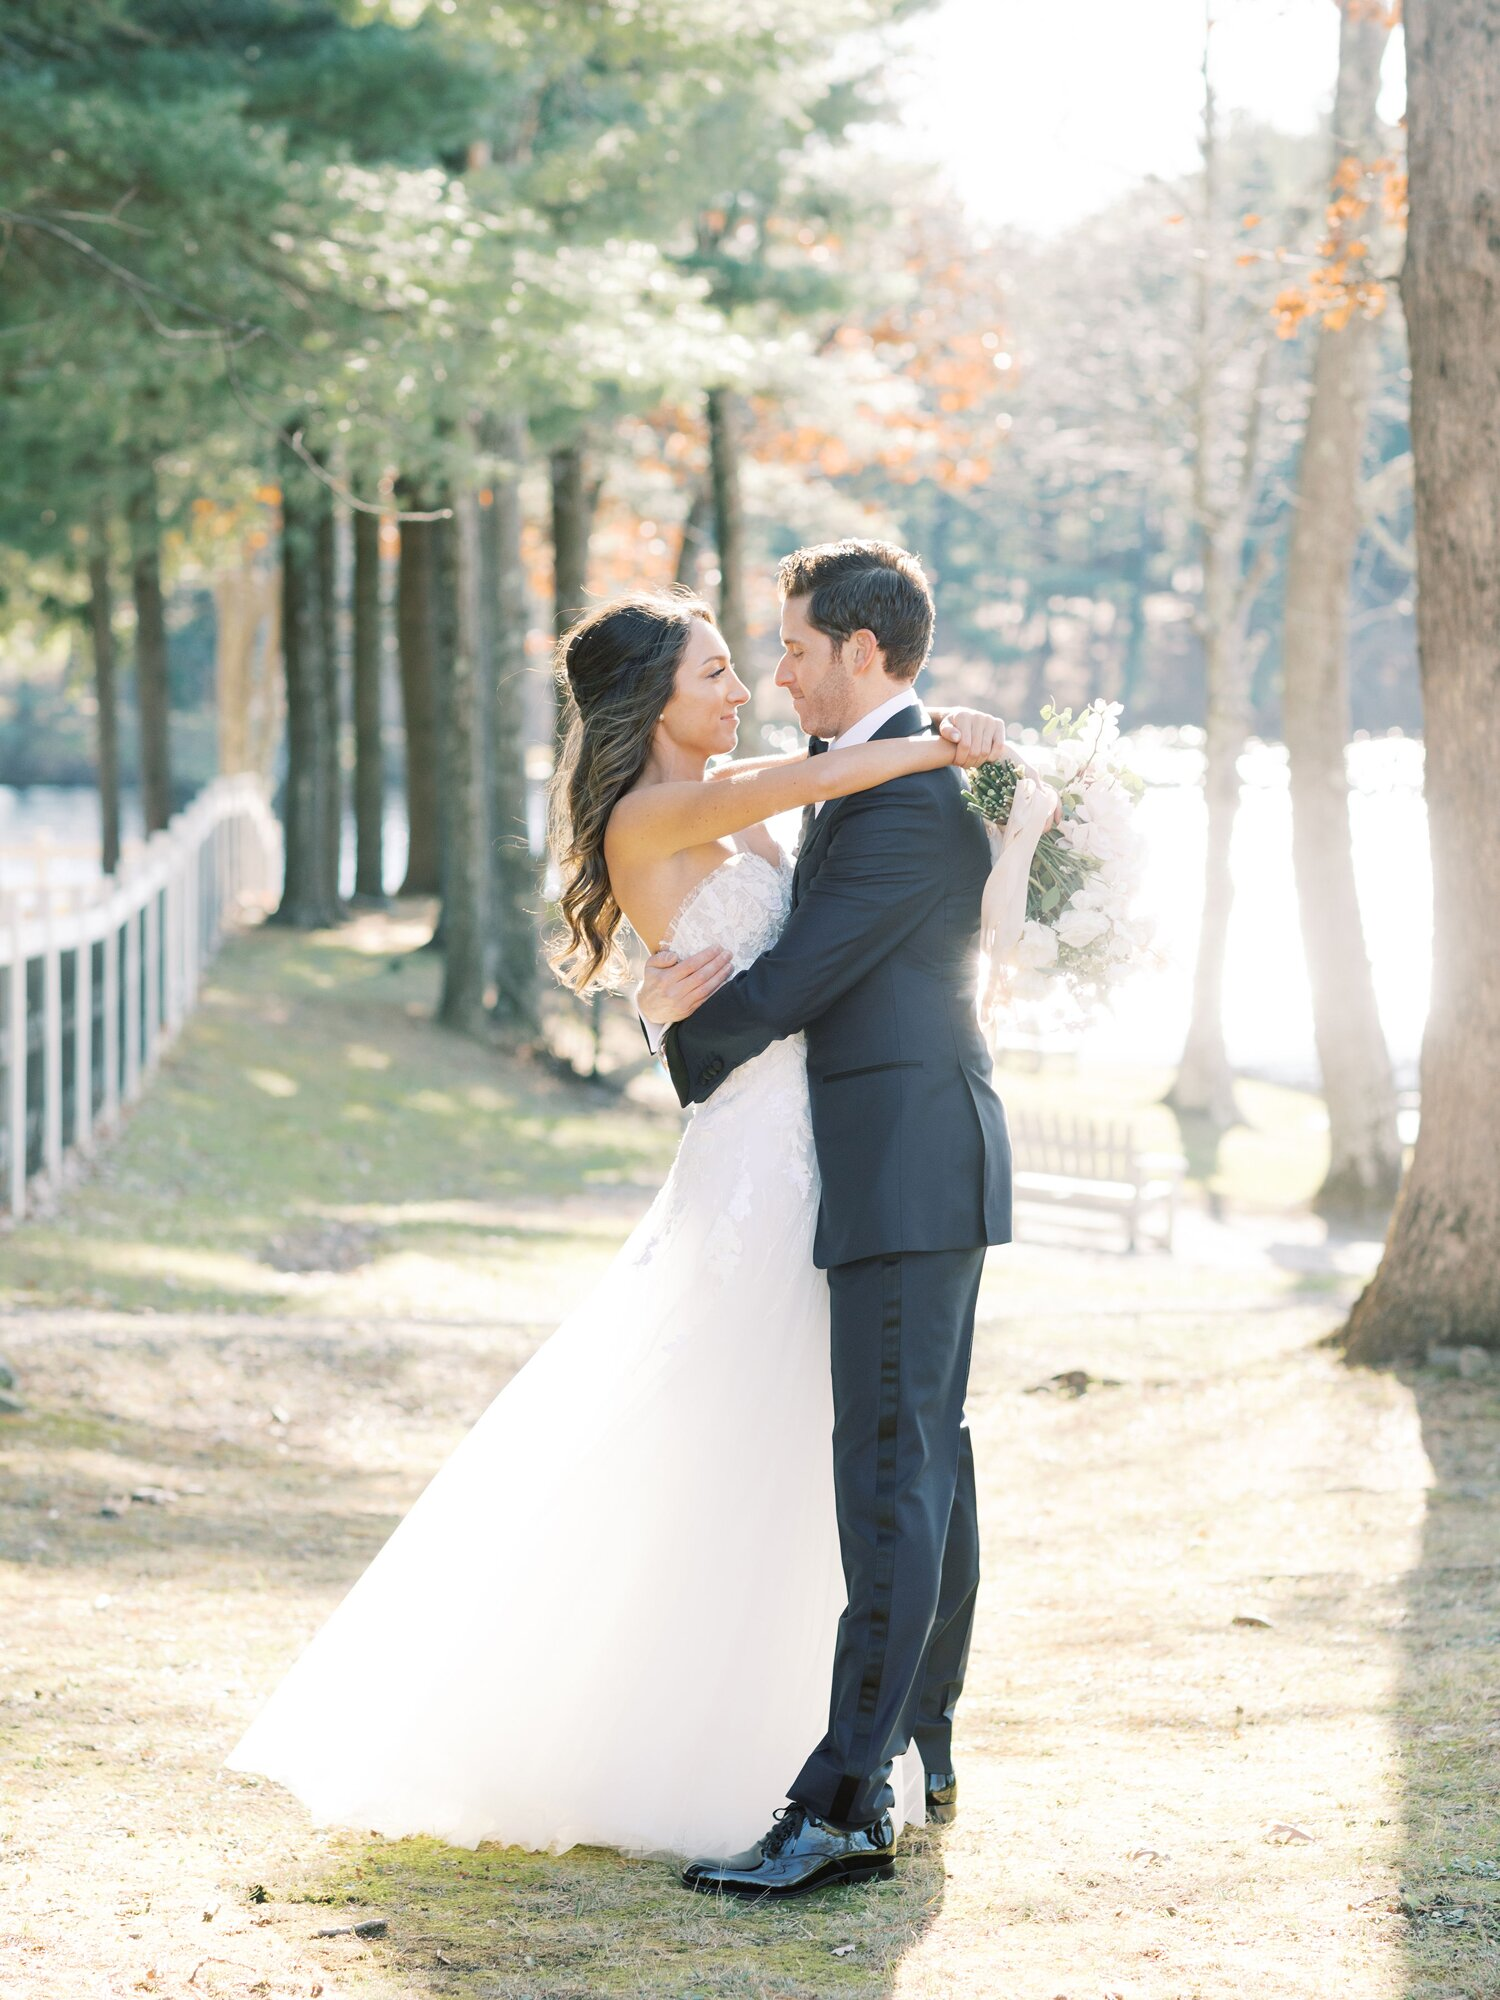 Lush Floral Decor Brought A Touch Of Spring To This Fall Wedding